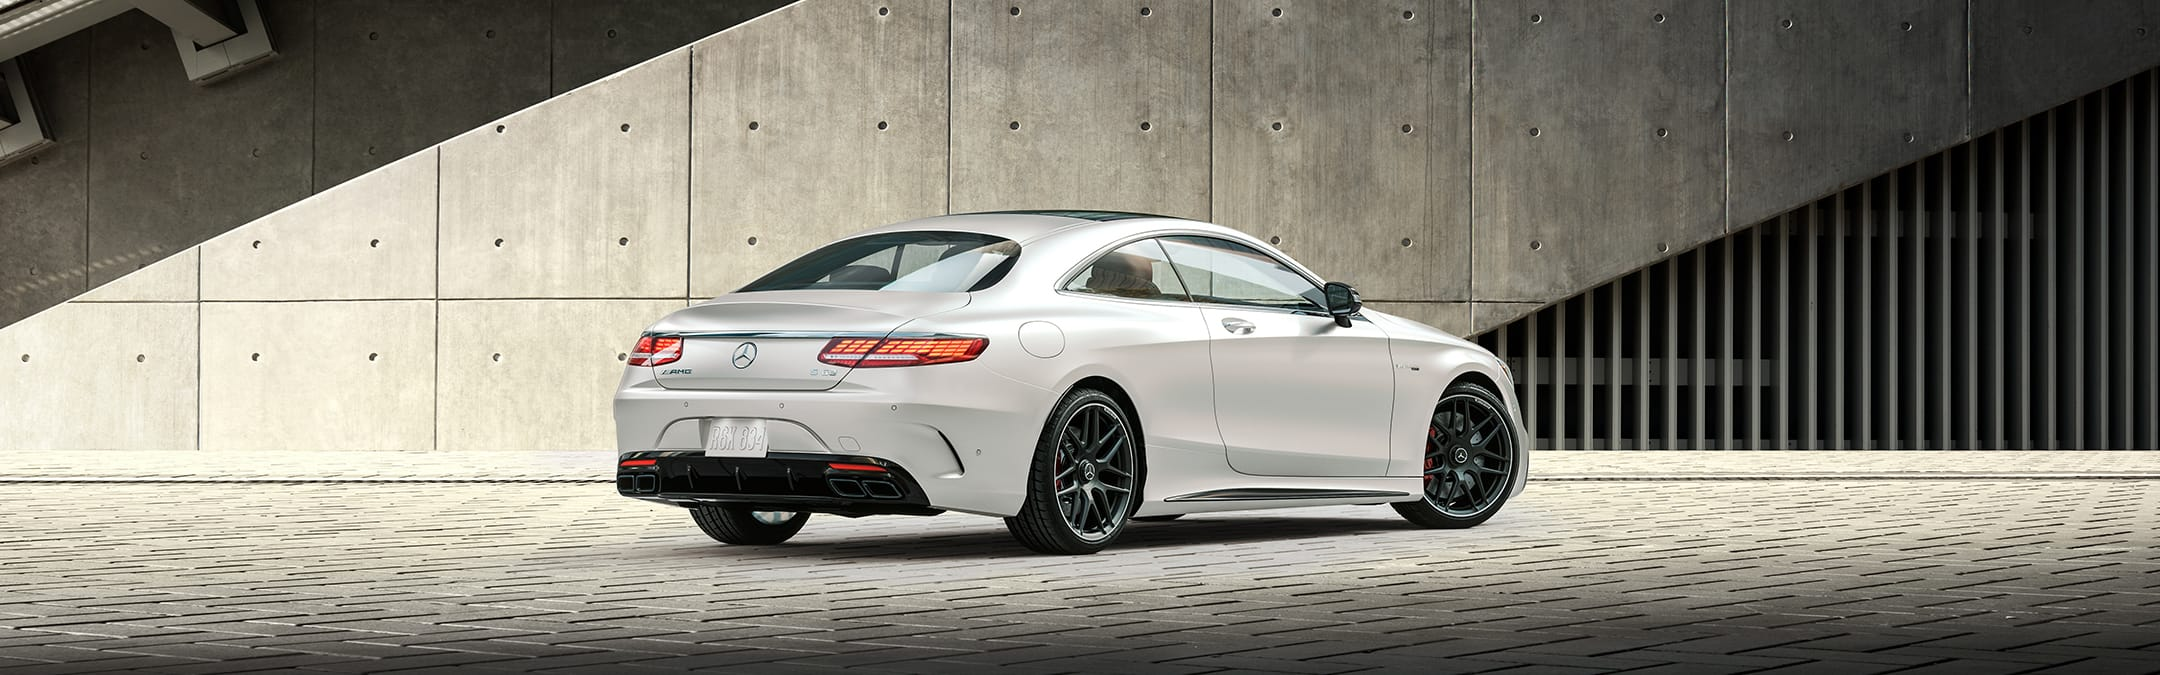 2021 AMG S COUPE